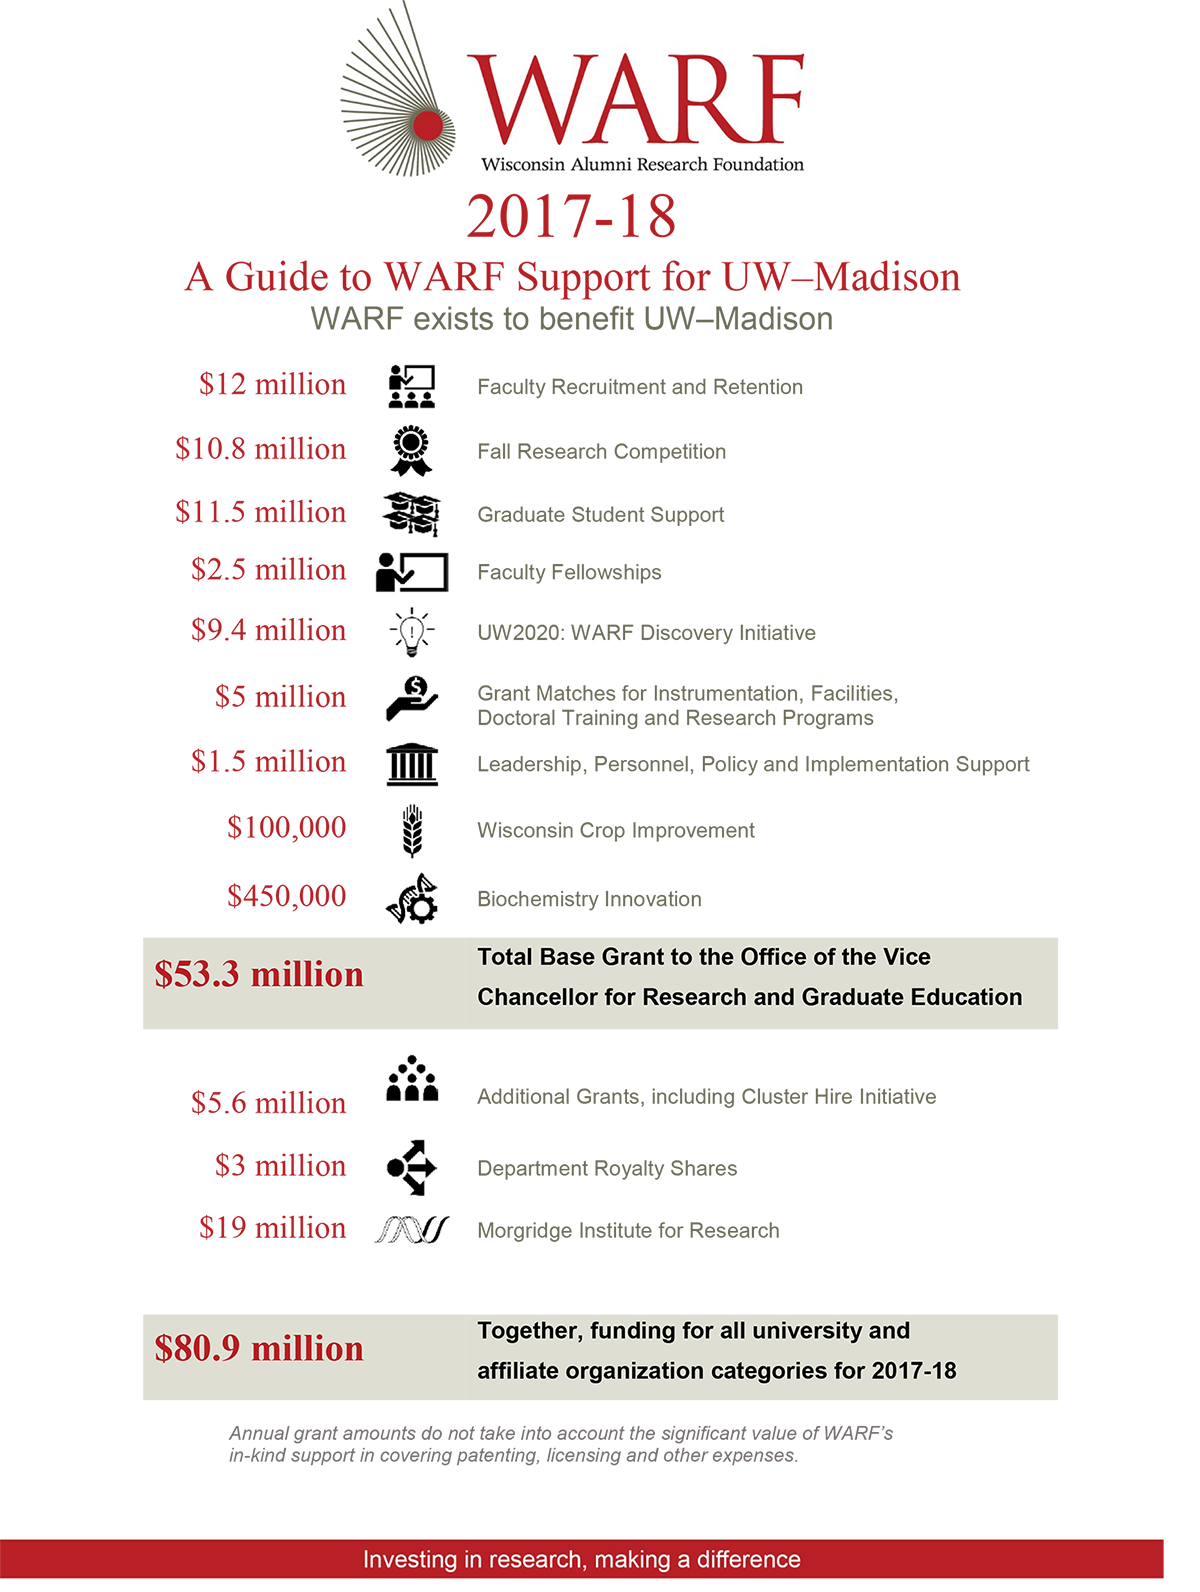 Graphic: List of WARF grants